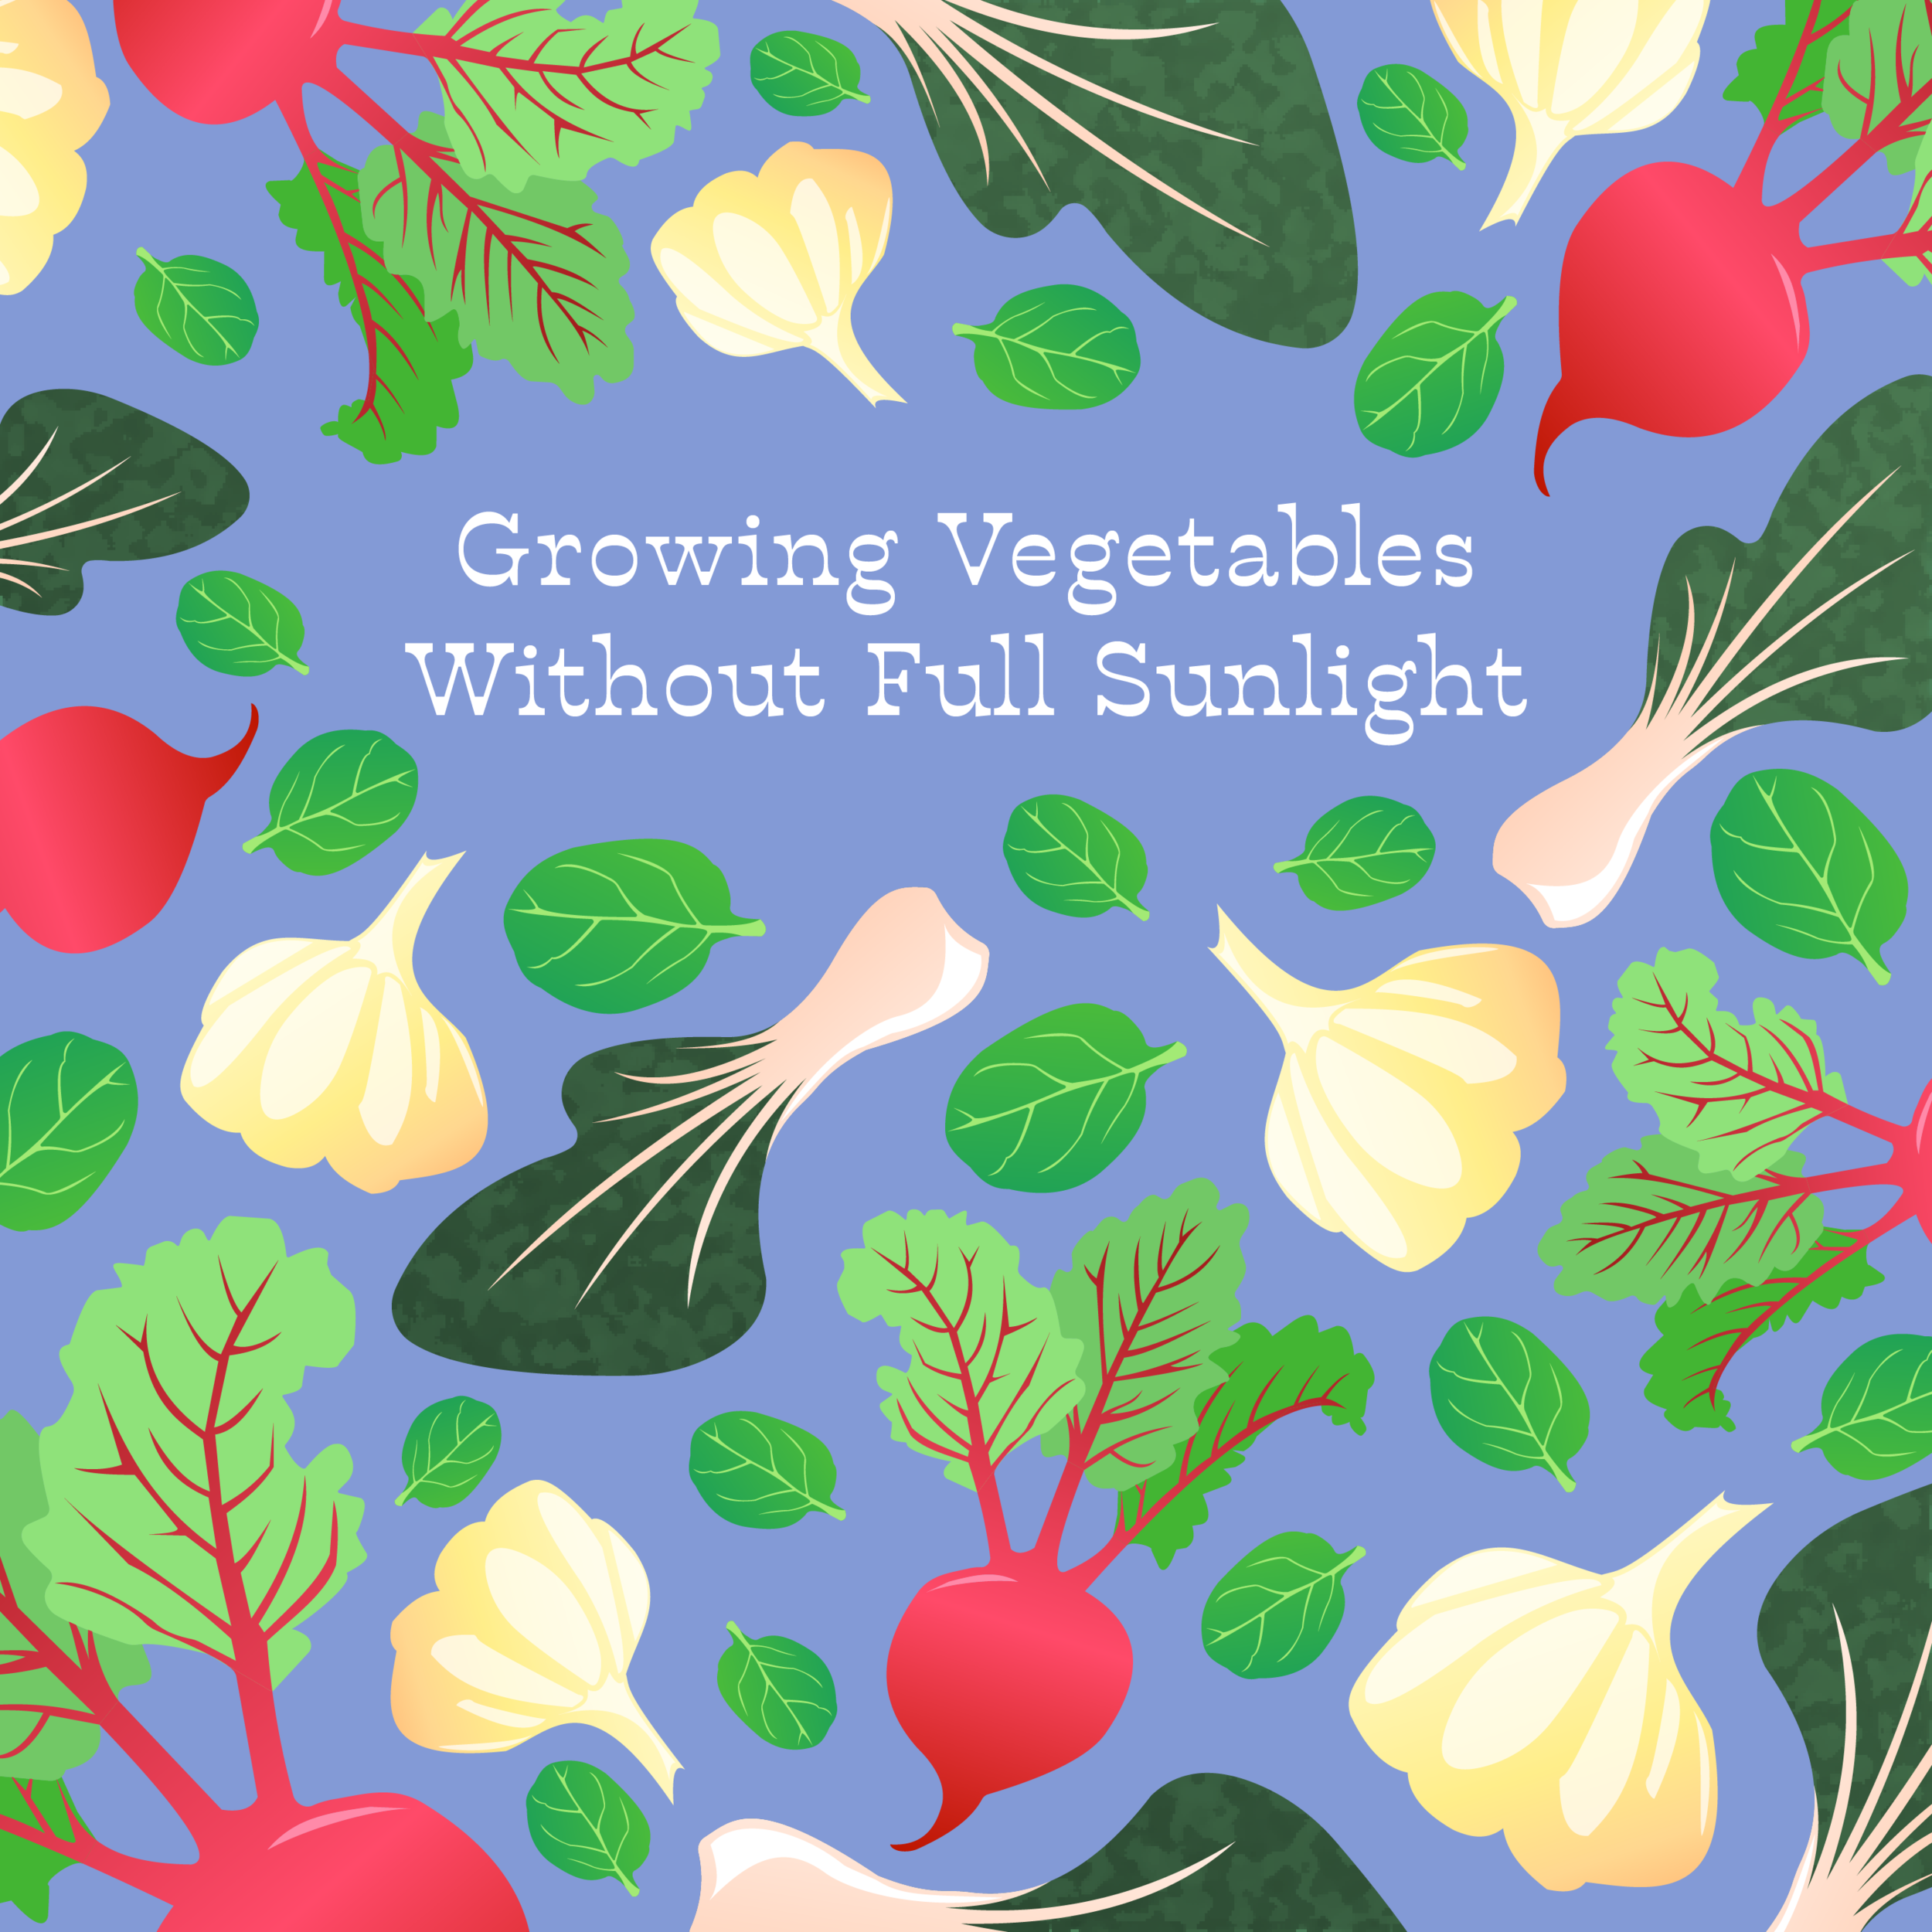 Growing Vegetables Without Full Sunlight - 2019   Adobe Illustrator